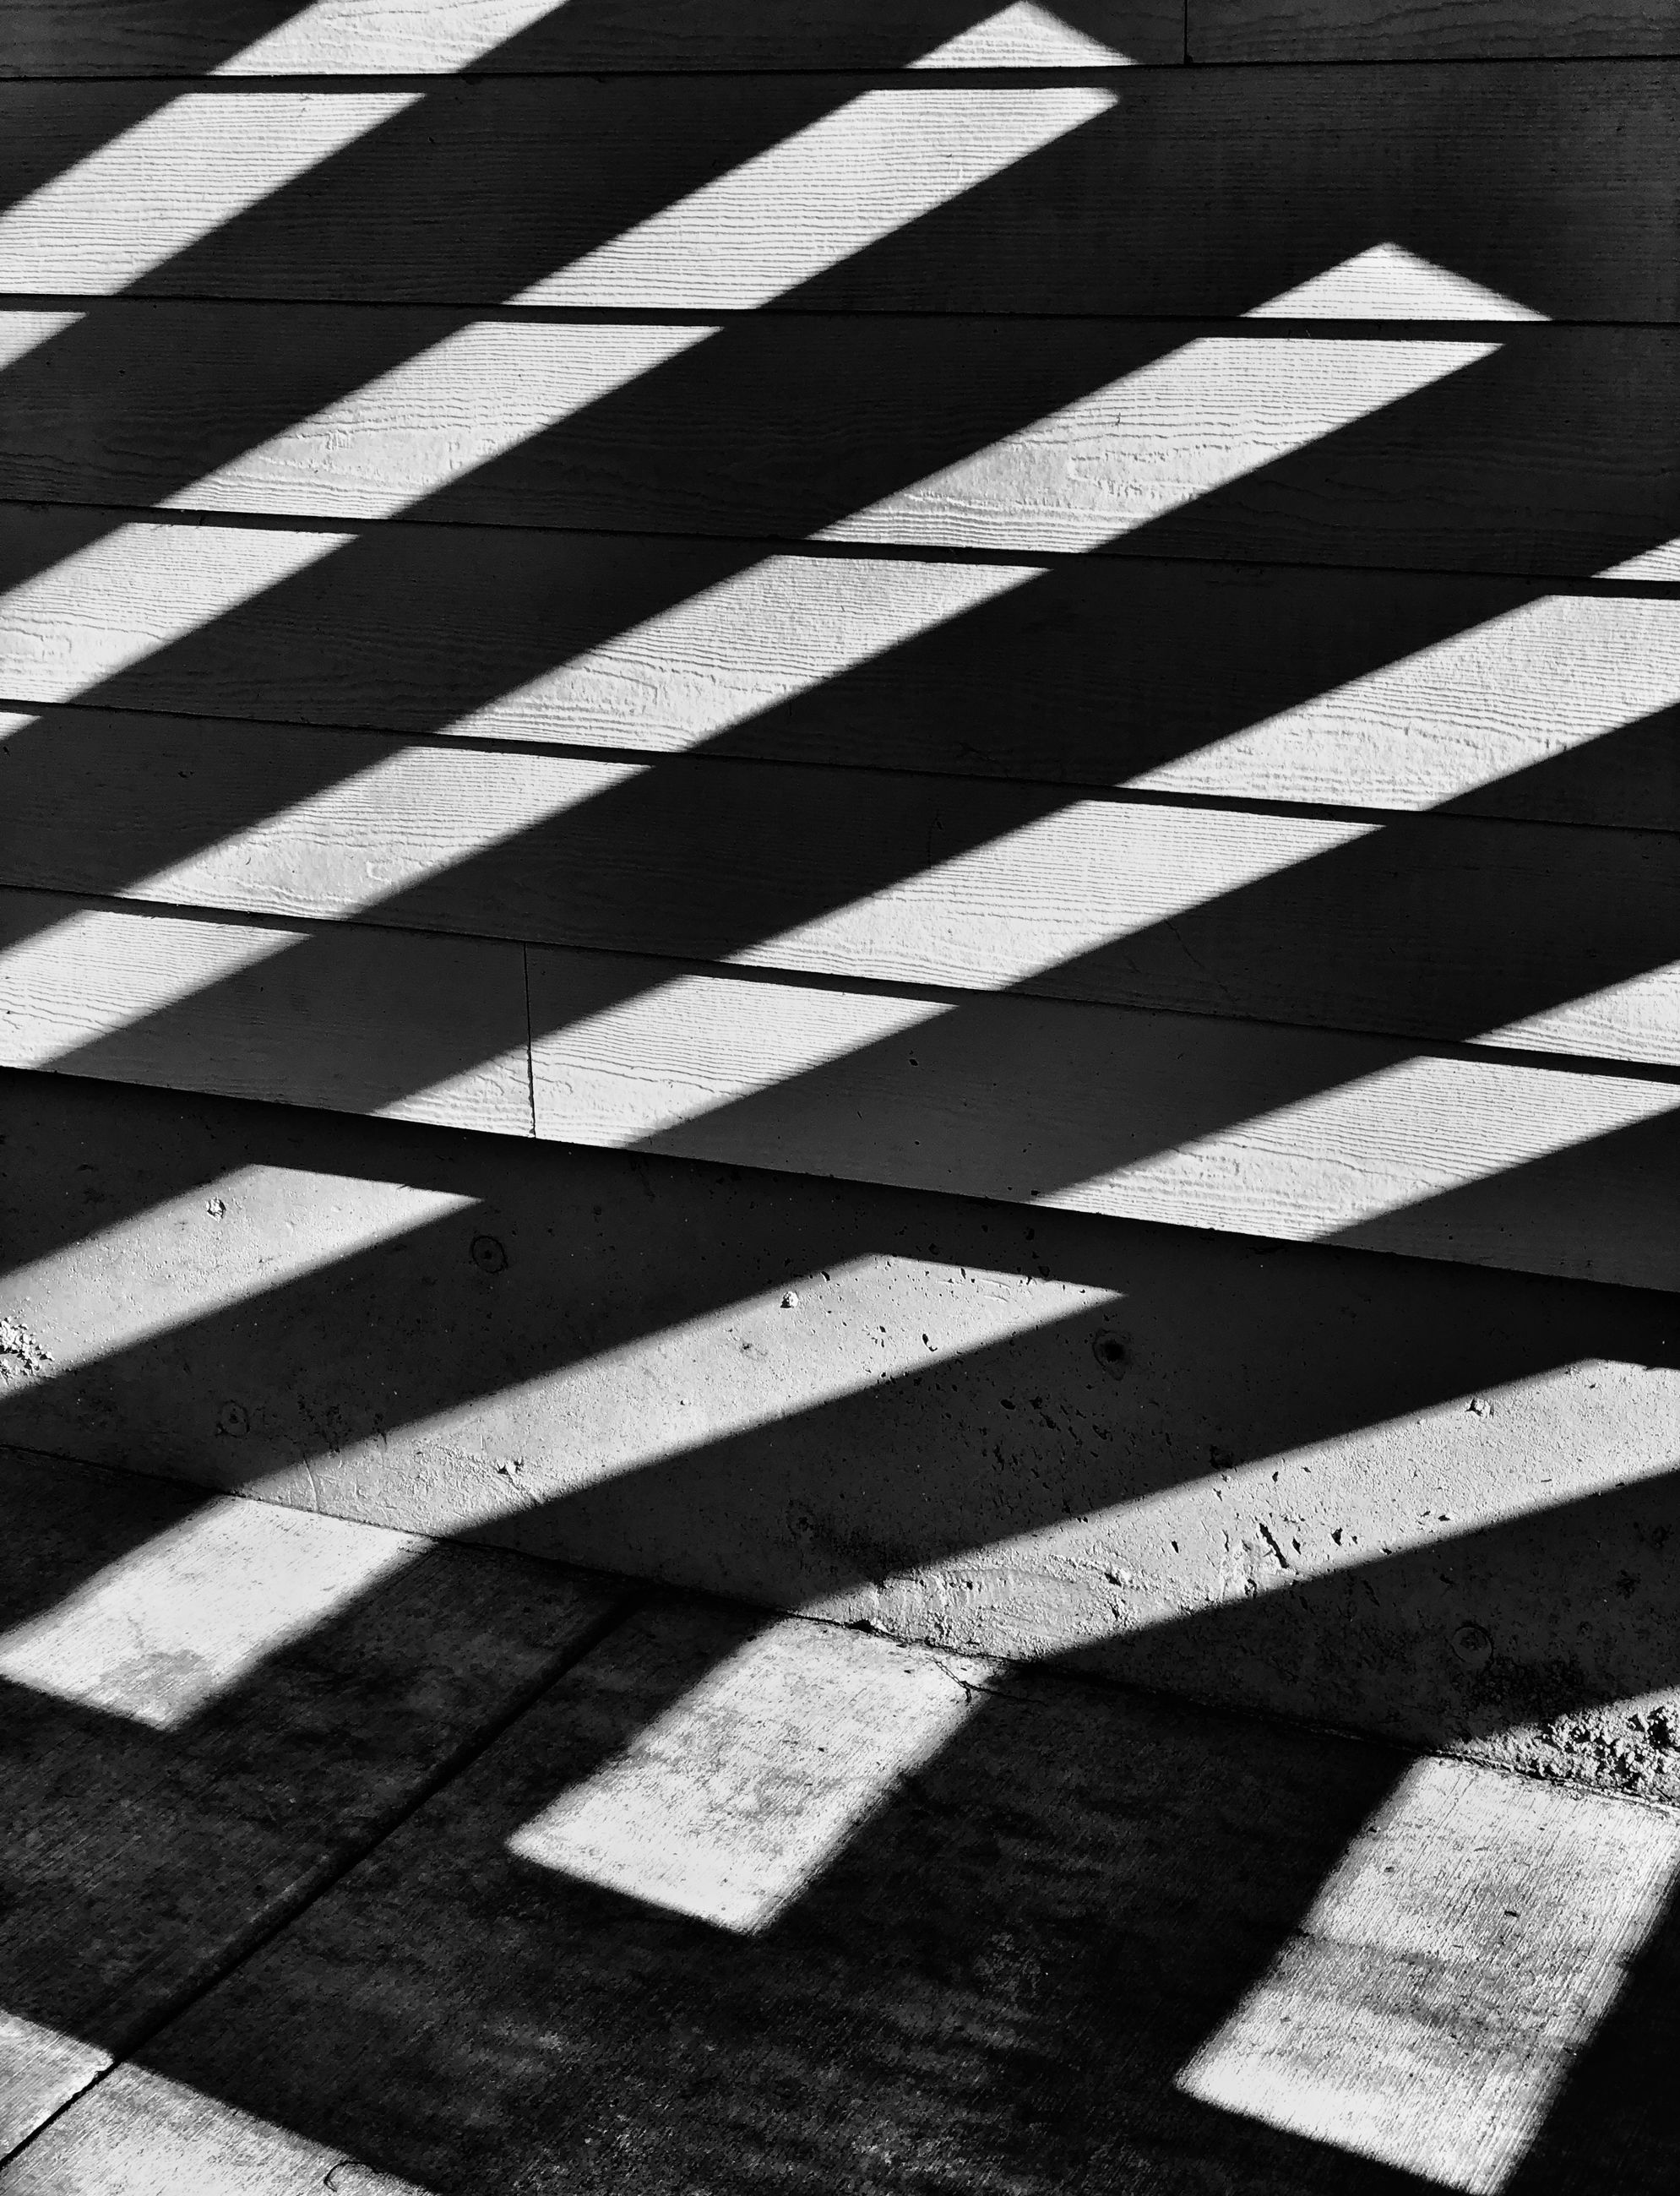 shadow, pattern, day, sunlight, striped, nature, no people, high angle view, full frame, outdoors, backgrounds, focus on shadow, sunny, road marking, crosswalk, flooring, architecture, footpath, close-up